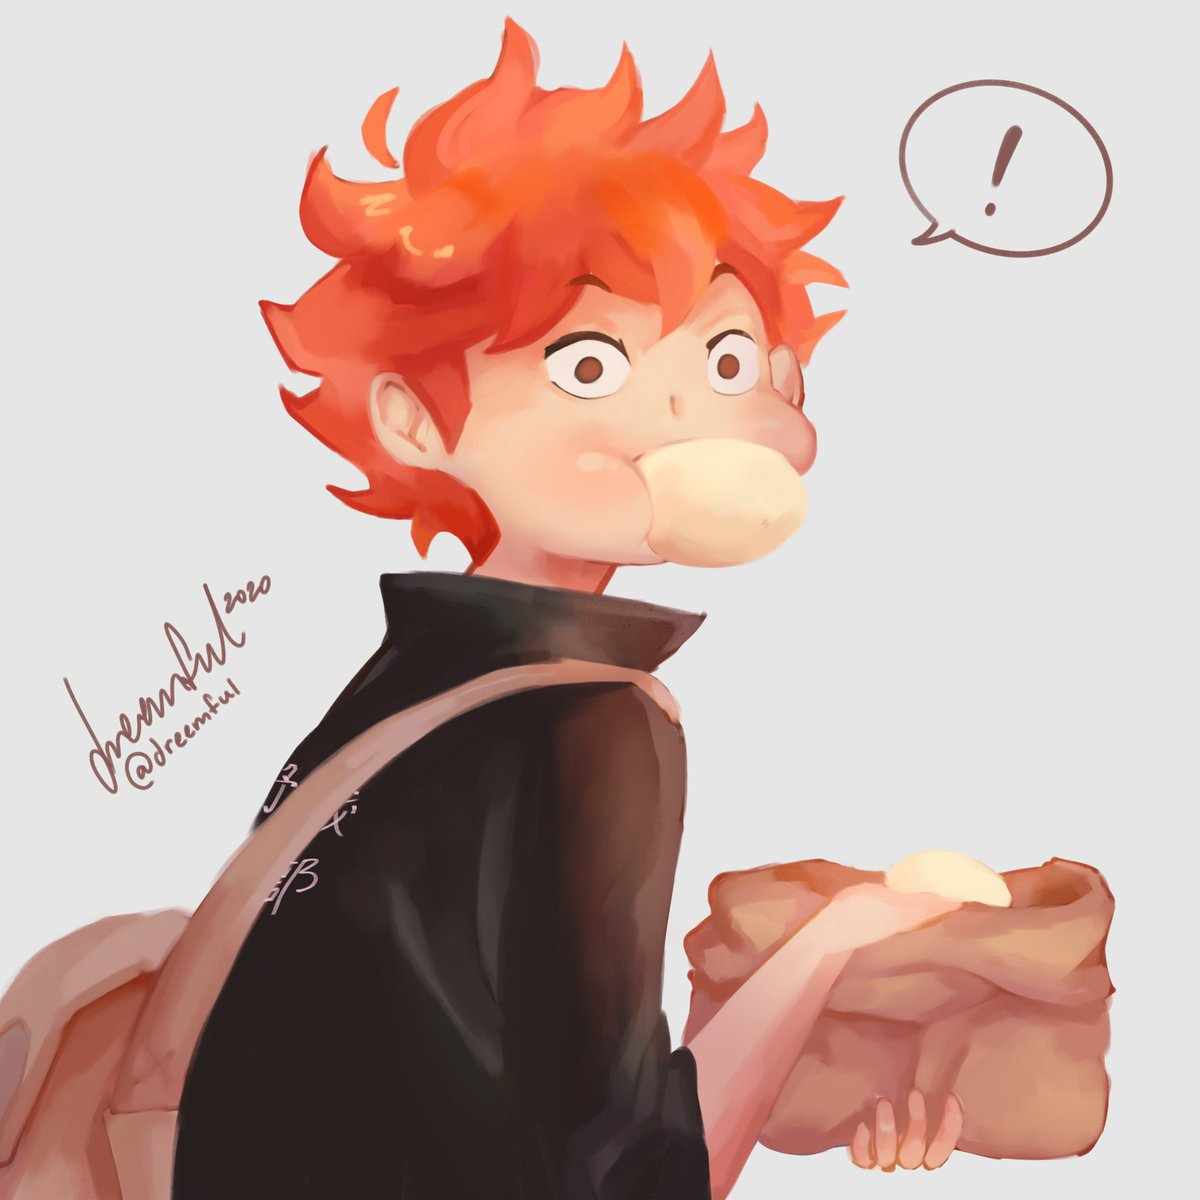 Happy Wednesday! I'm trying to watch more of BNHA so I can get more ideas for art for ya guys 💛💛 (also I love that anime sm!! Ty mia for introducing it to me😪💛)  #Haikyuu #illustration https://t.co/xTujIVp3SC